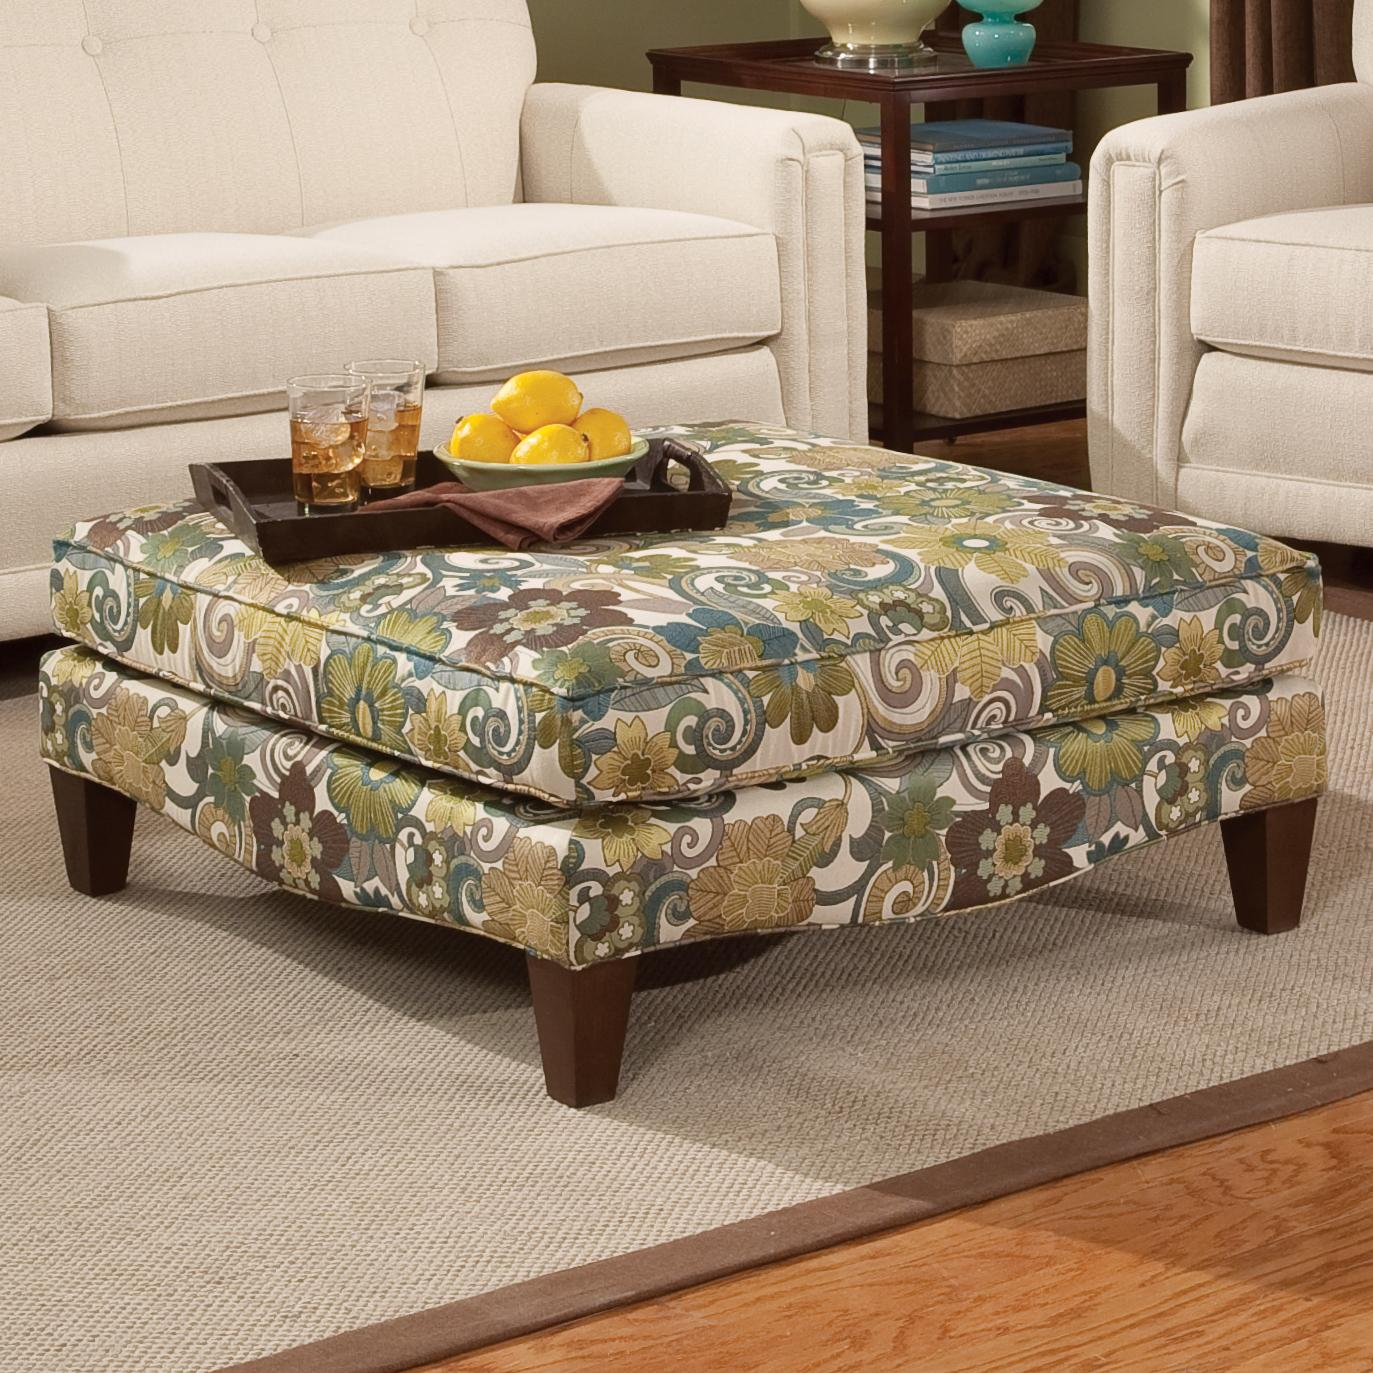 Awe Inspiring Oversized Square Ottoman Cover Royals Courage Oversized Andrewgaddart Wooden Chair Designs For Living Room Andrewgaddartcom